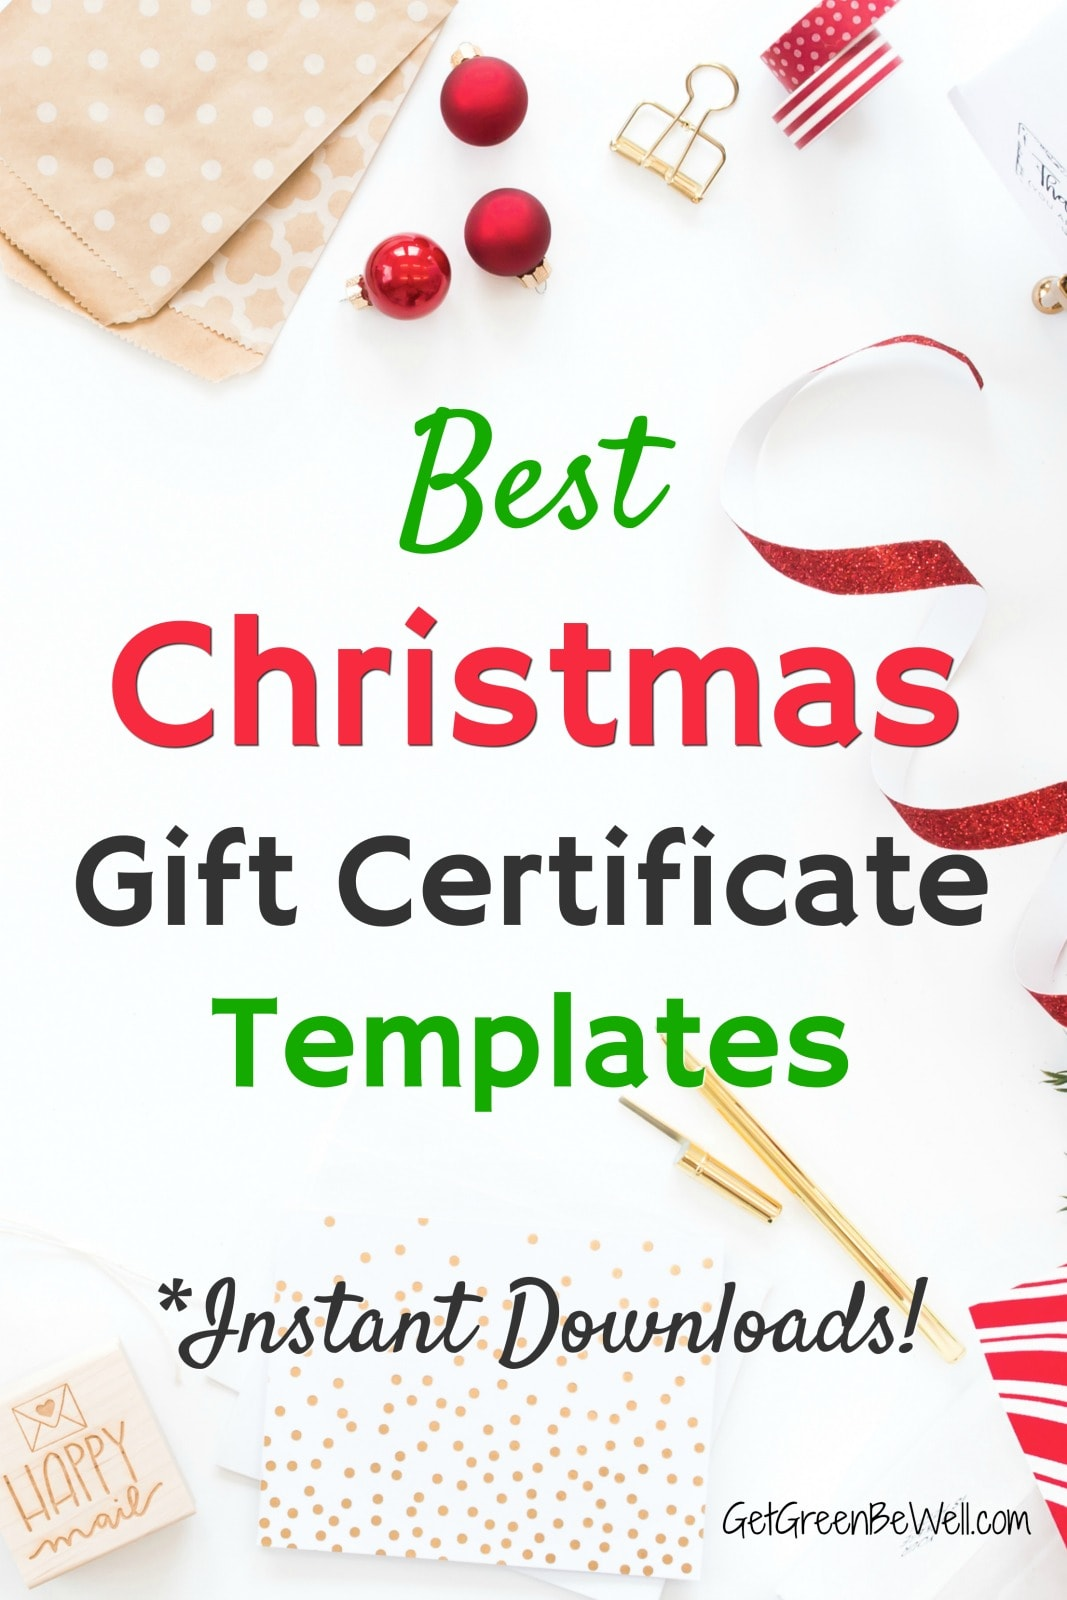 Best Christmas Gift Certificate Template Downloads 30   Get ...